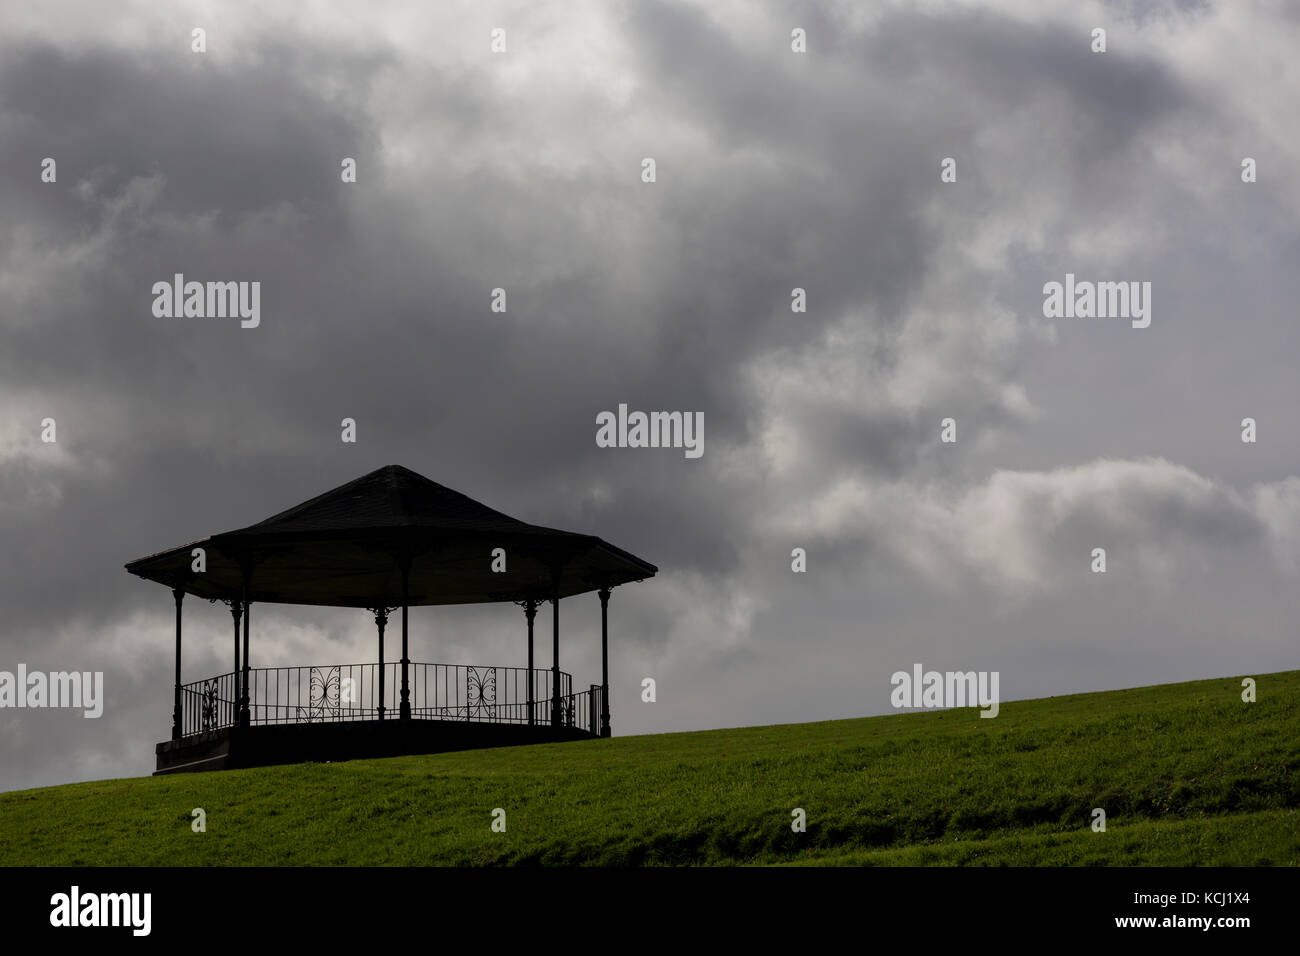 Bandstand at top of hill against dark, moody clouds in sky, green grass in foreground - Stock Image